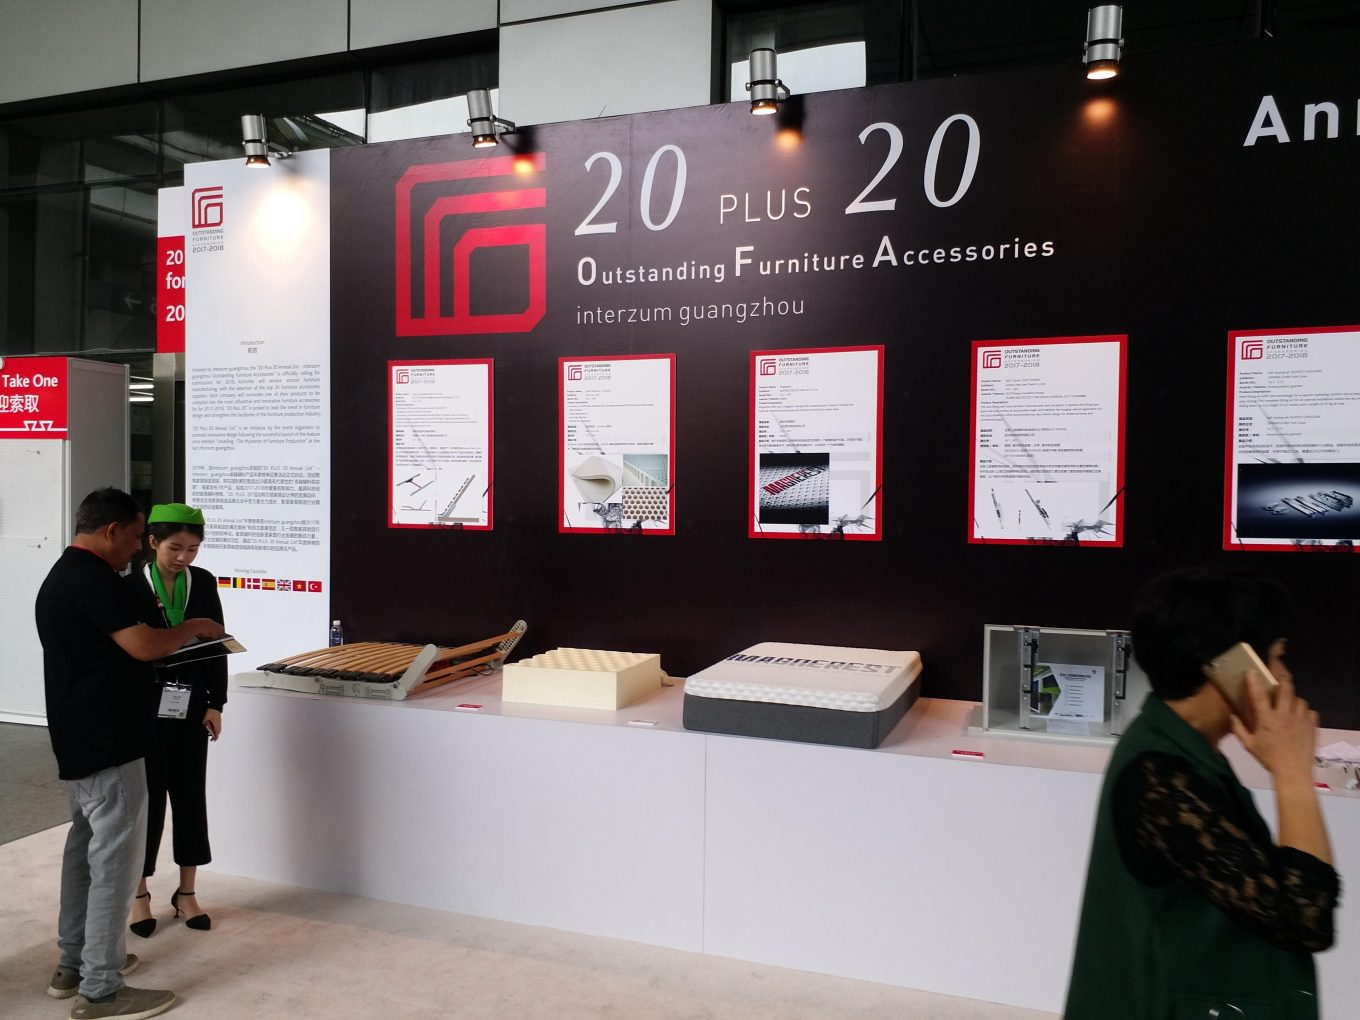 20 plus 20 interzum guangzhou 2019  interzum guangzhou 2019 INTERZUM GUANGZHOU 2019 EVENT GUIDE 20plus